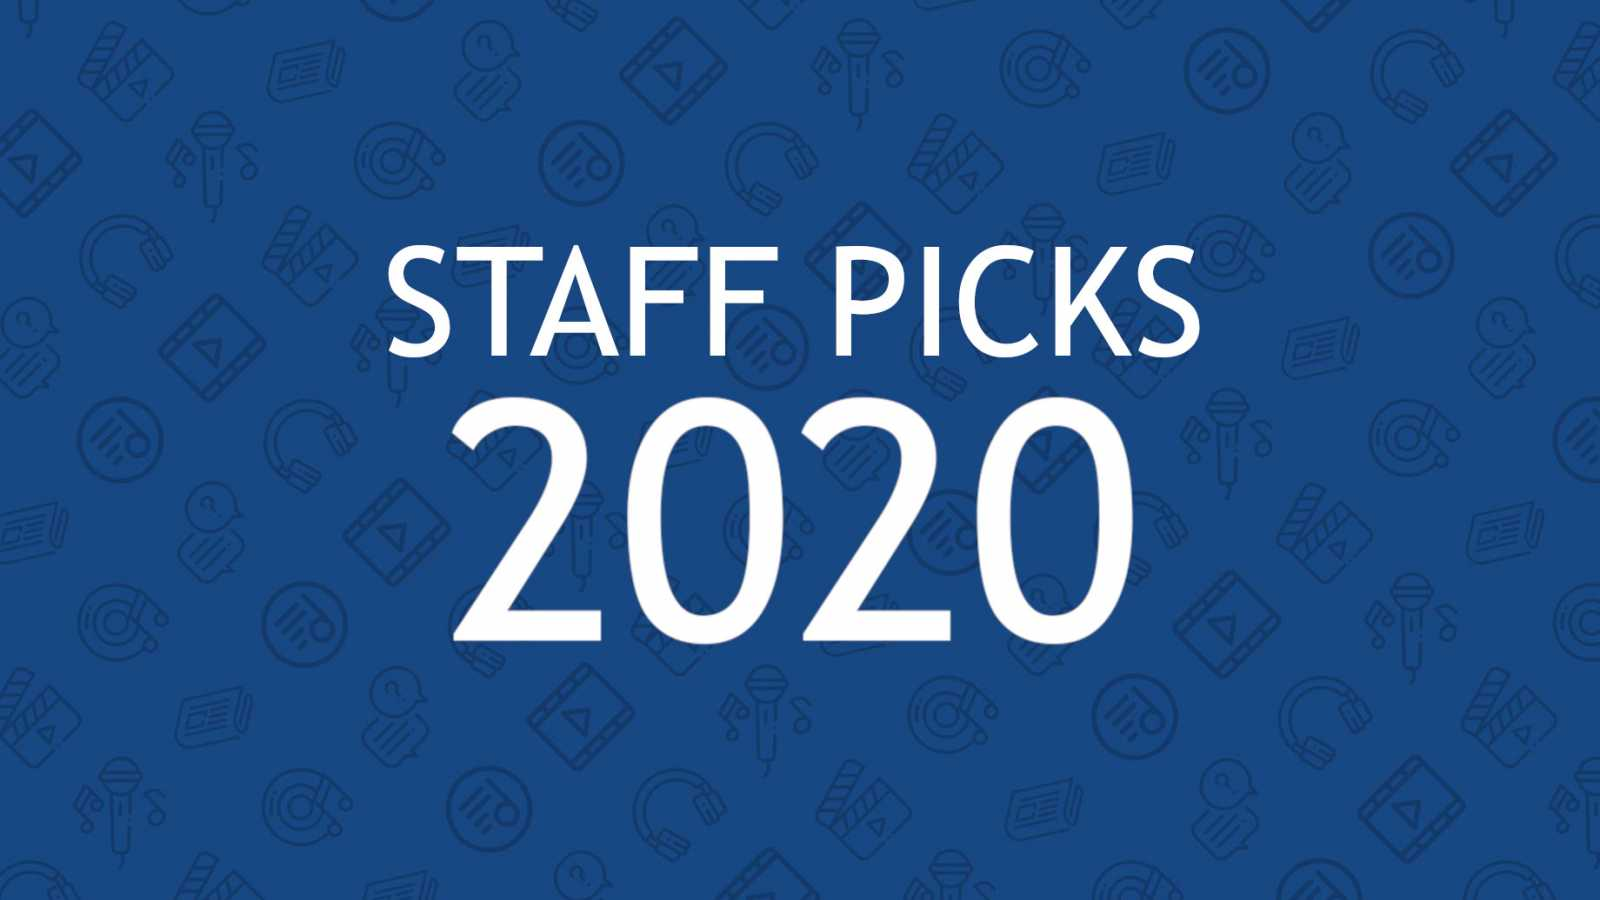 JaMEs Staff Picks 2020 Playlist